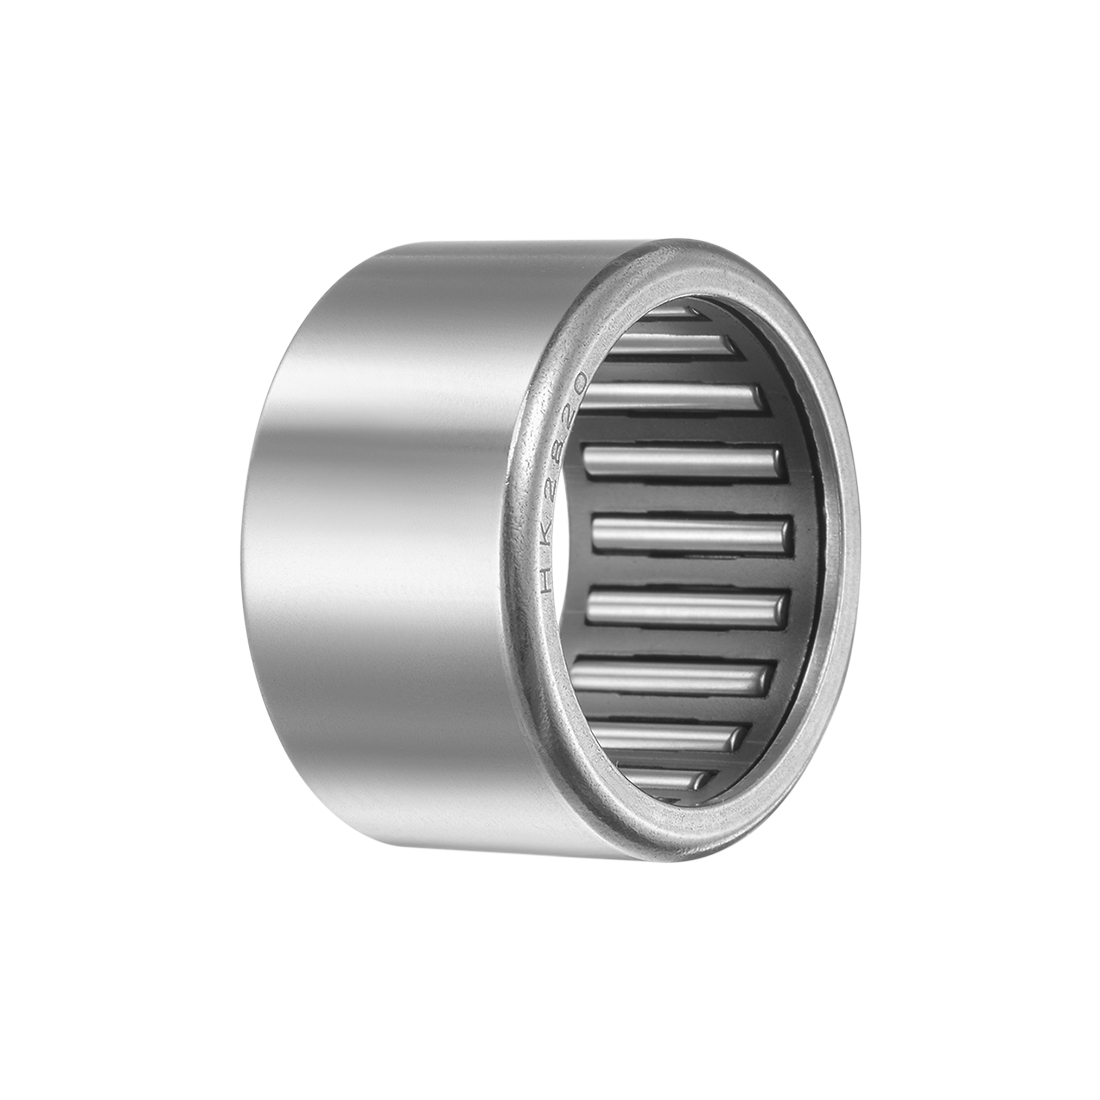 HK2820 Drawn Cup Needle Roller Bearings 28mm Bore, 35mm OD, 20mm Width